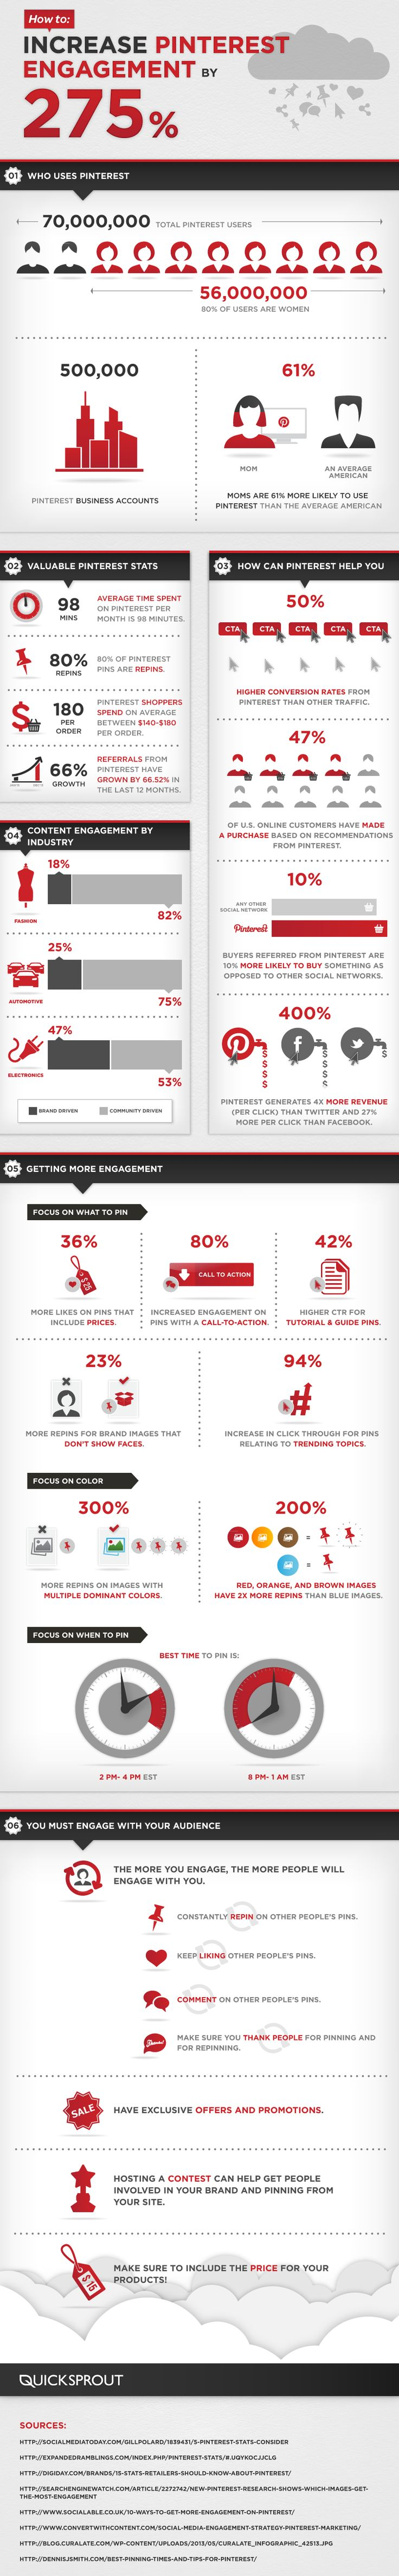 How To Increase Pinterest Engagement By 275% #infographic